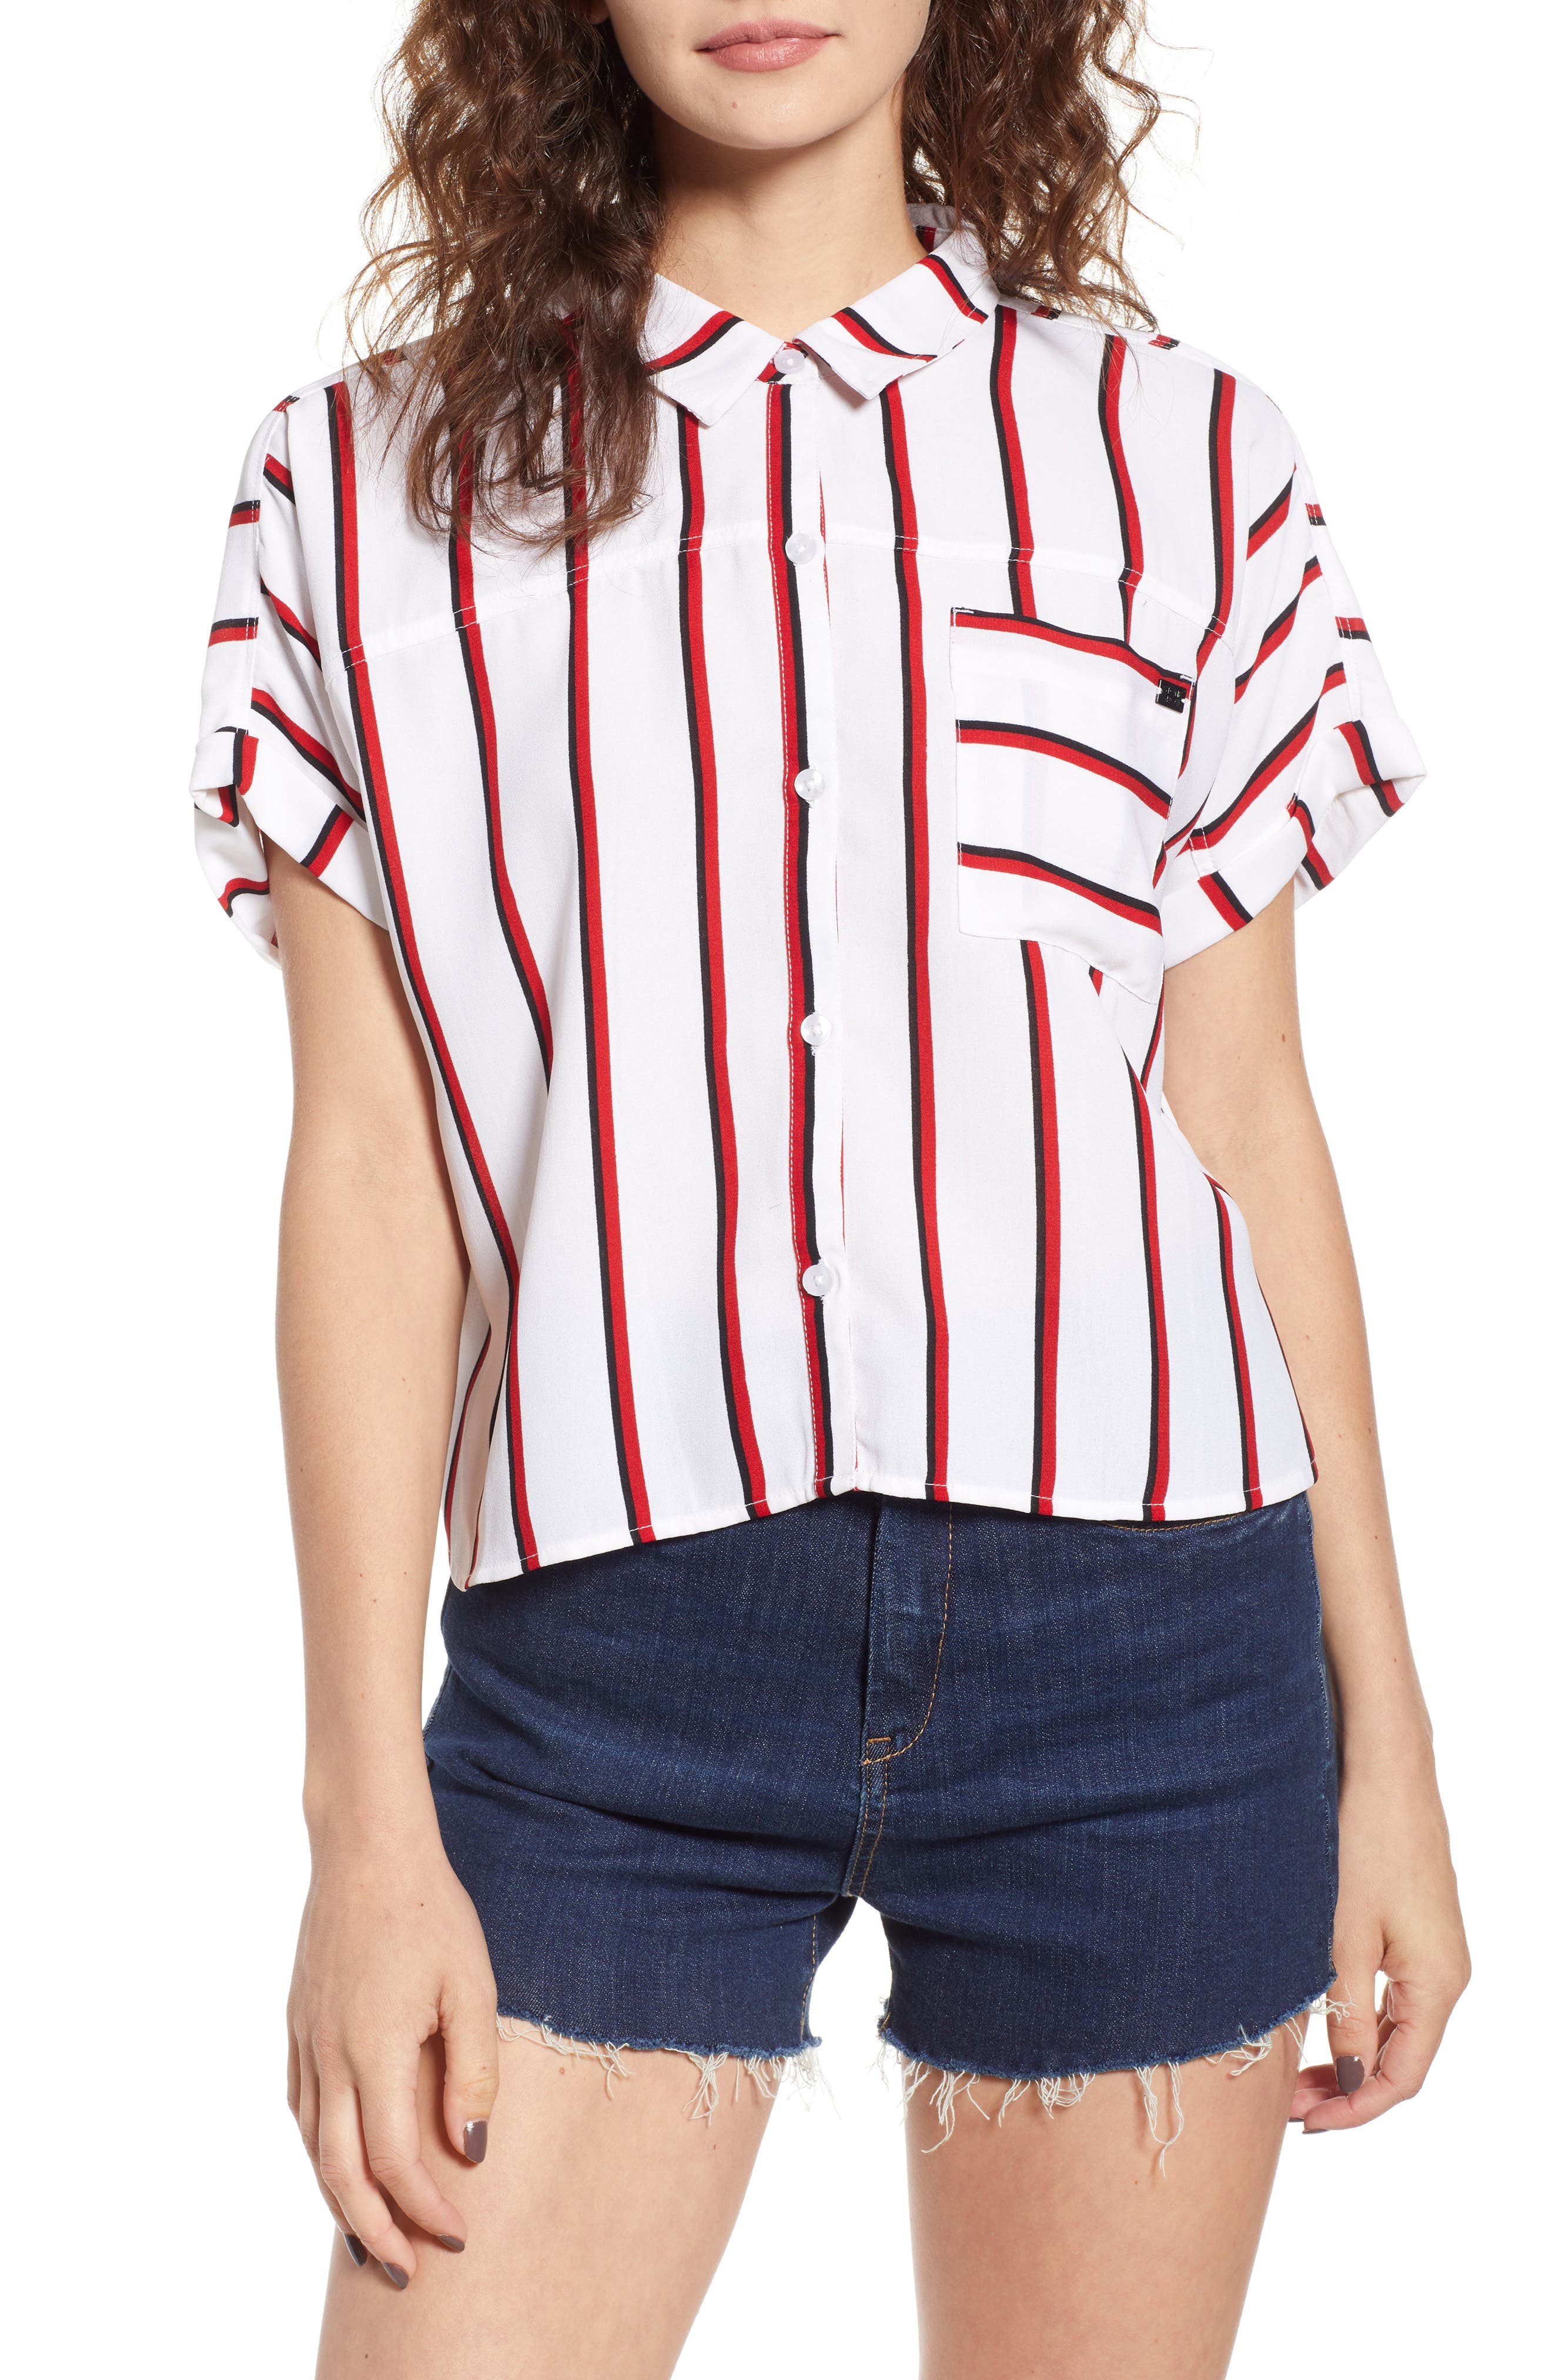 Counting Moons Stripe Top,                         Main,                         color, 600